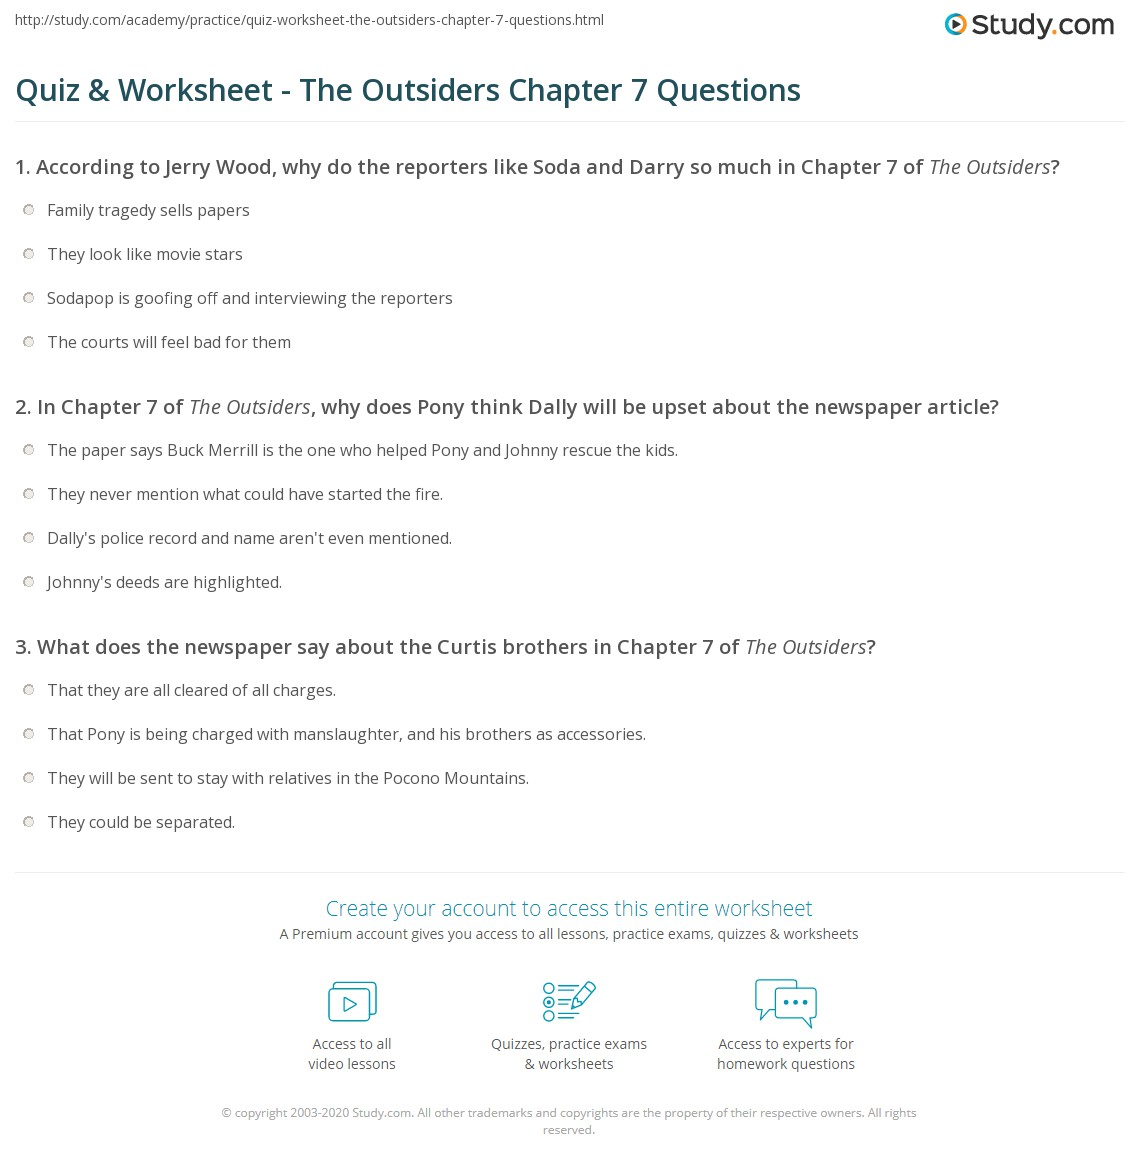 Workbooks the outsiders workbook : Quiz & Worksheet - The Outsiders Chapter 7 Questions | Study.com